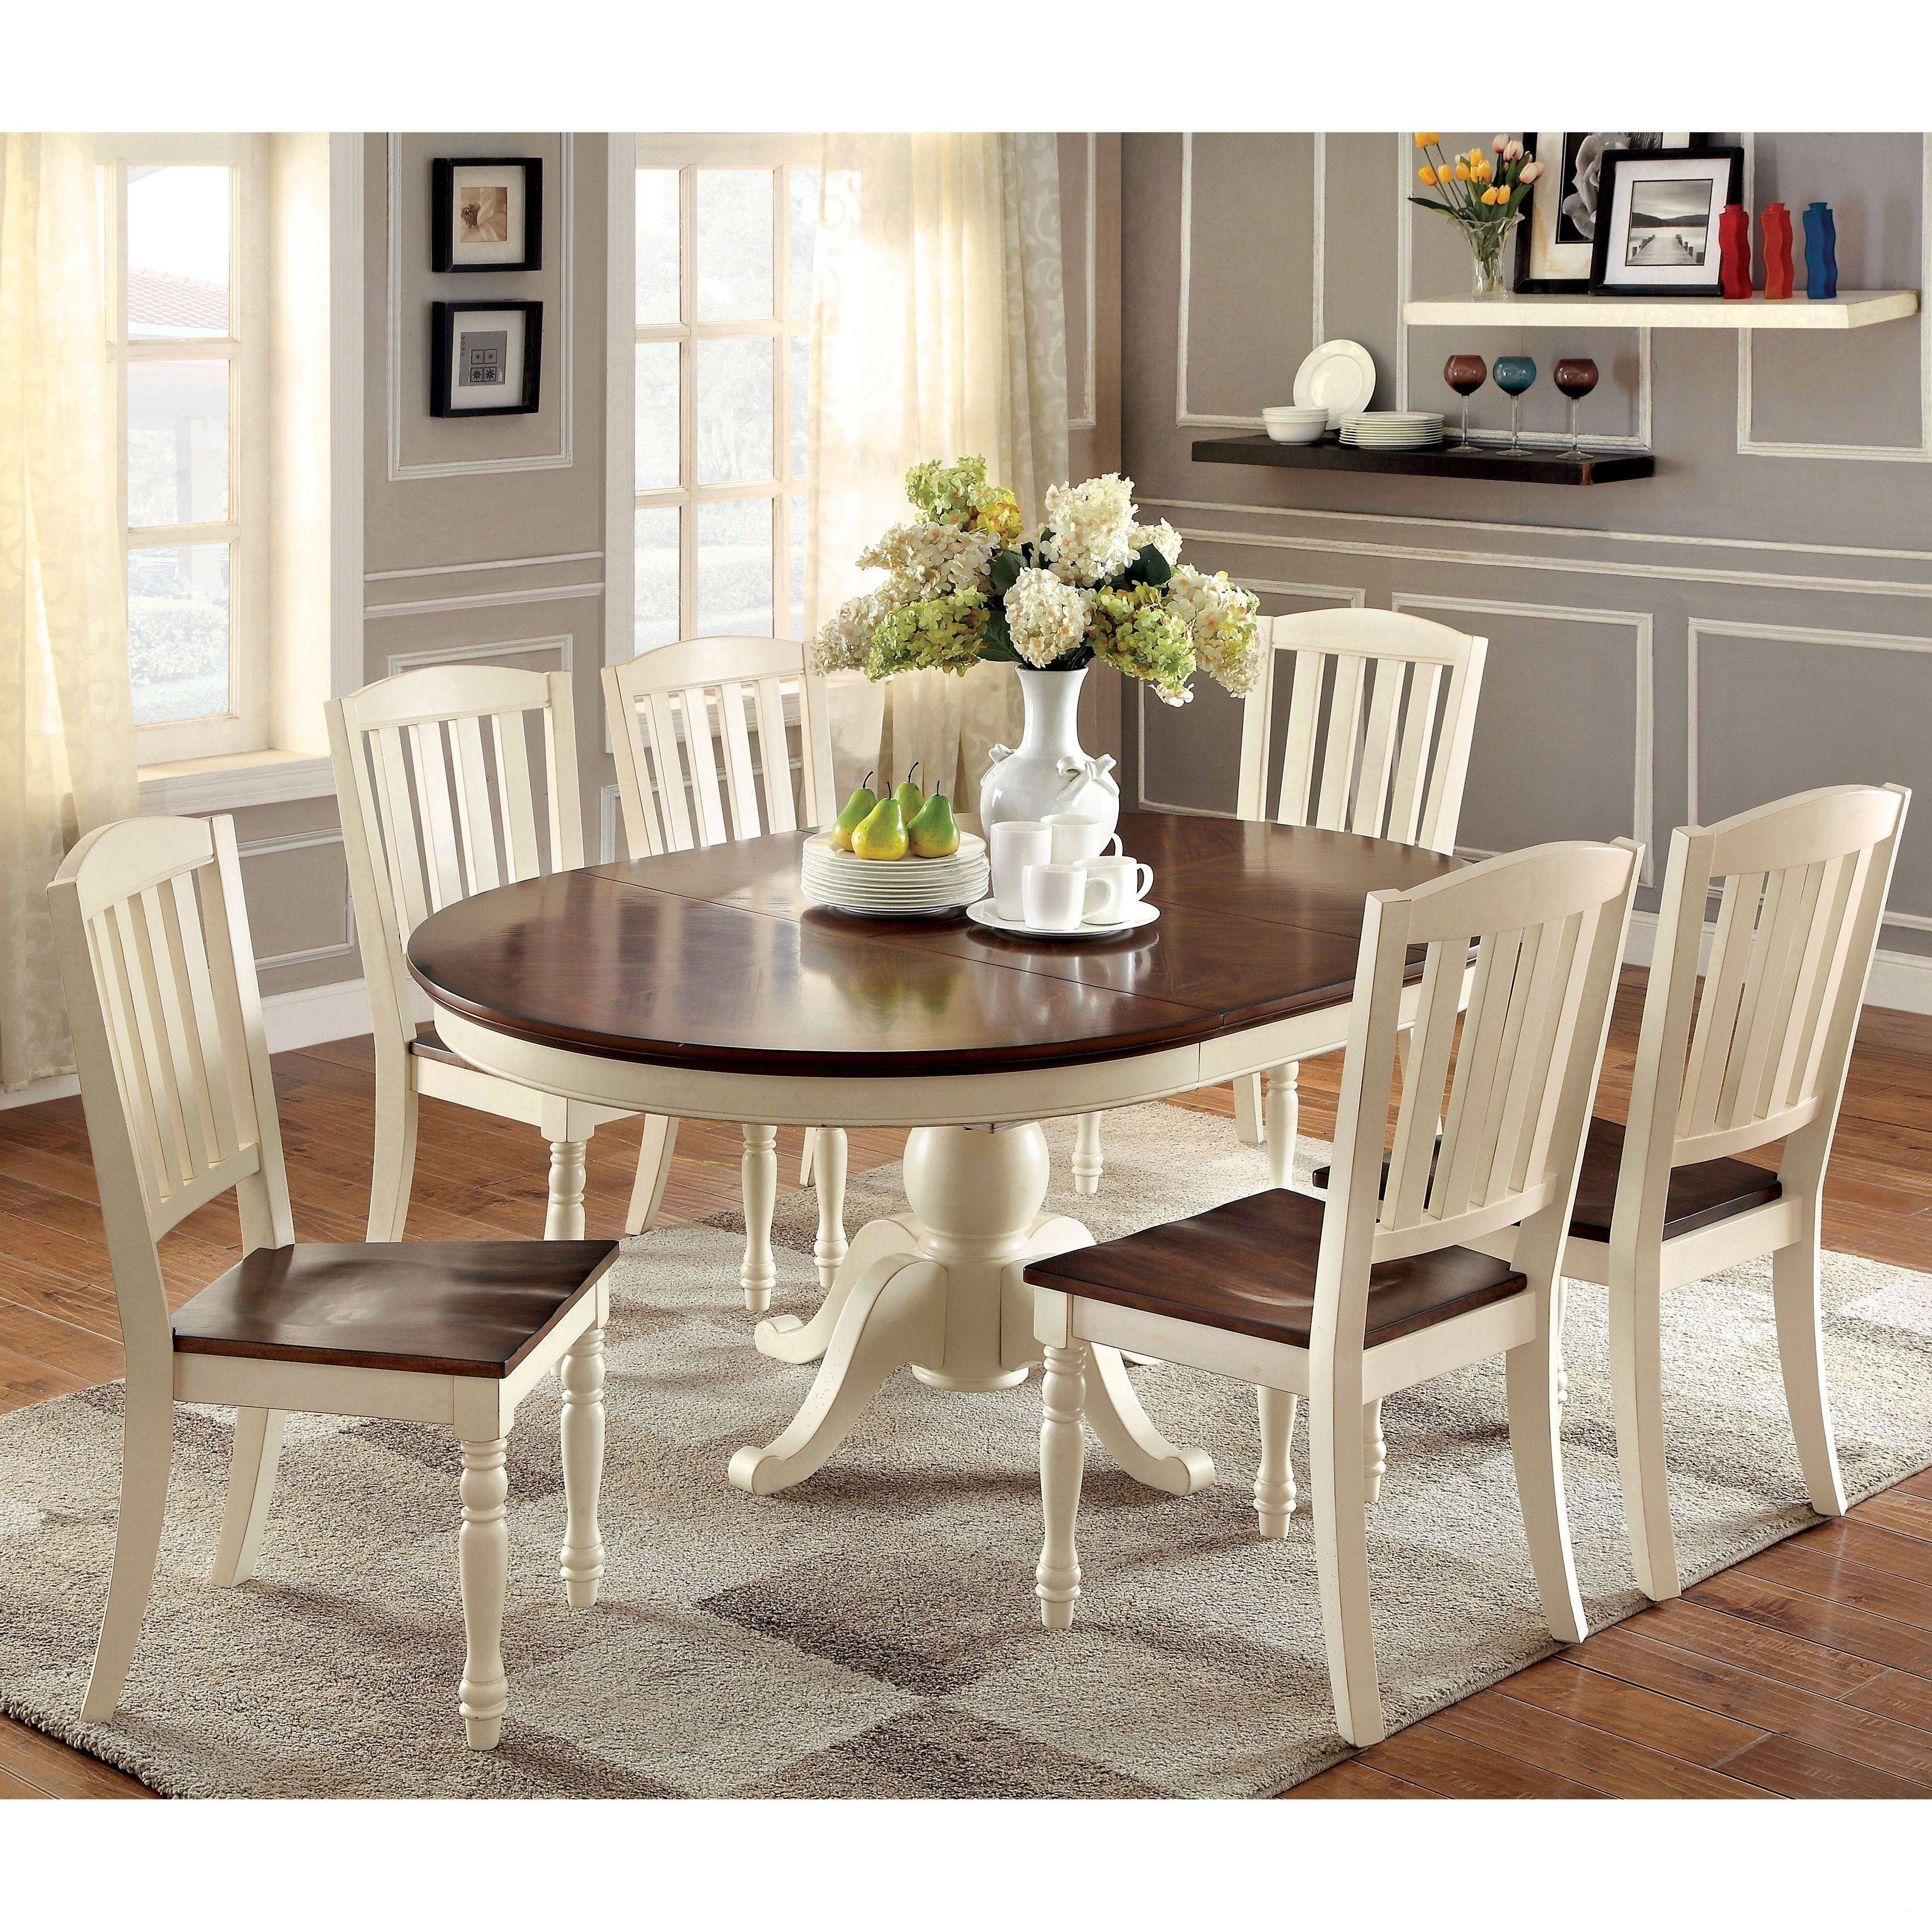 Recent Extending Dining Table Sets Regarding Pedestal Extending Dining Table Luxury Round Extension Dining Table (View 20 of 25)